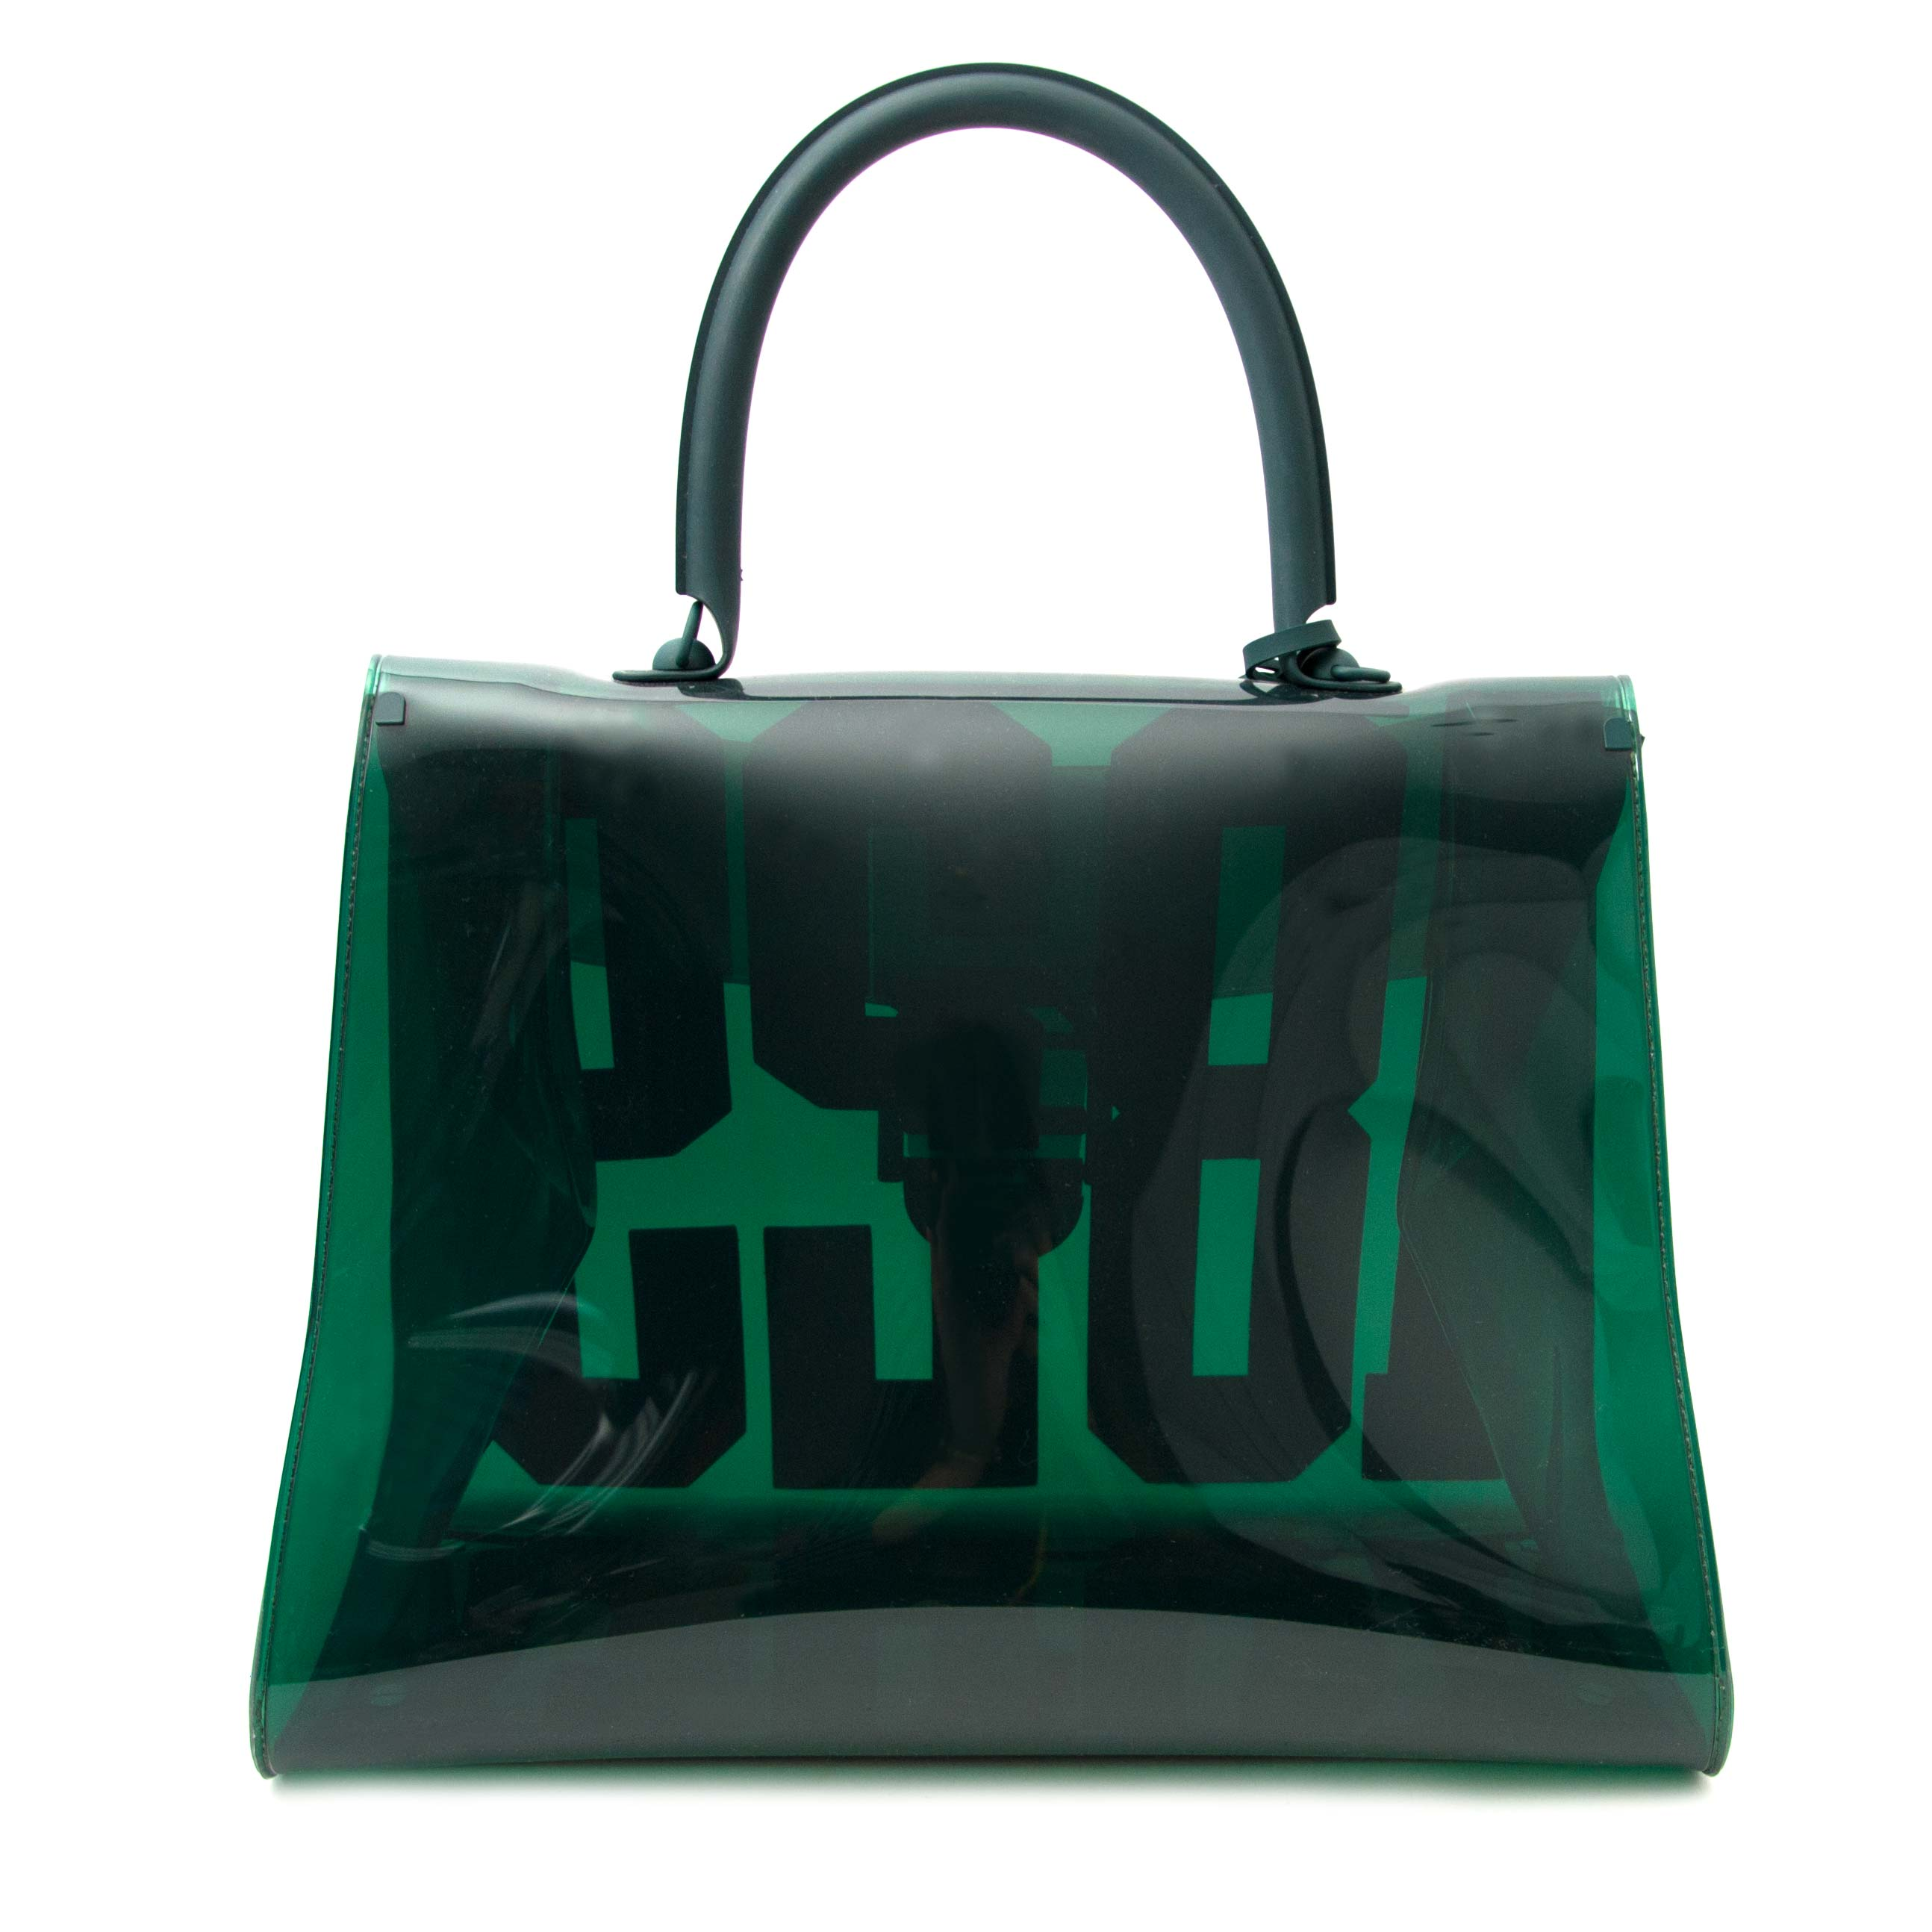 shop your secondhand koop veilig  Delvaux Limited Edition Hero Brillant acheter en ligne